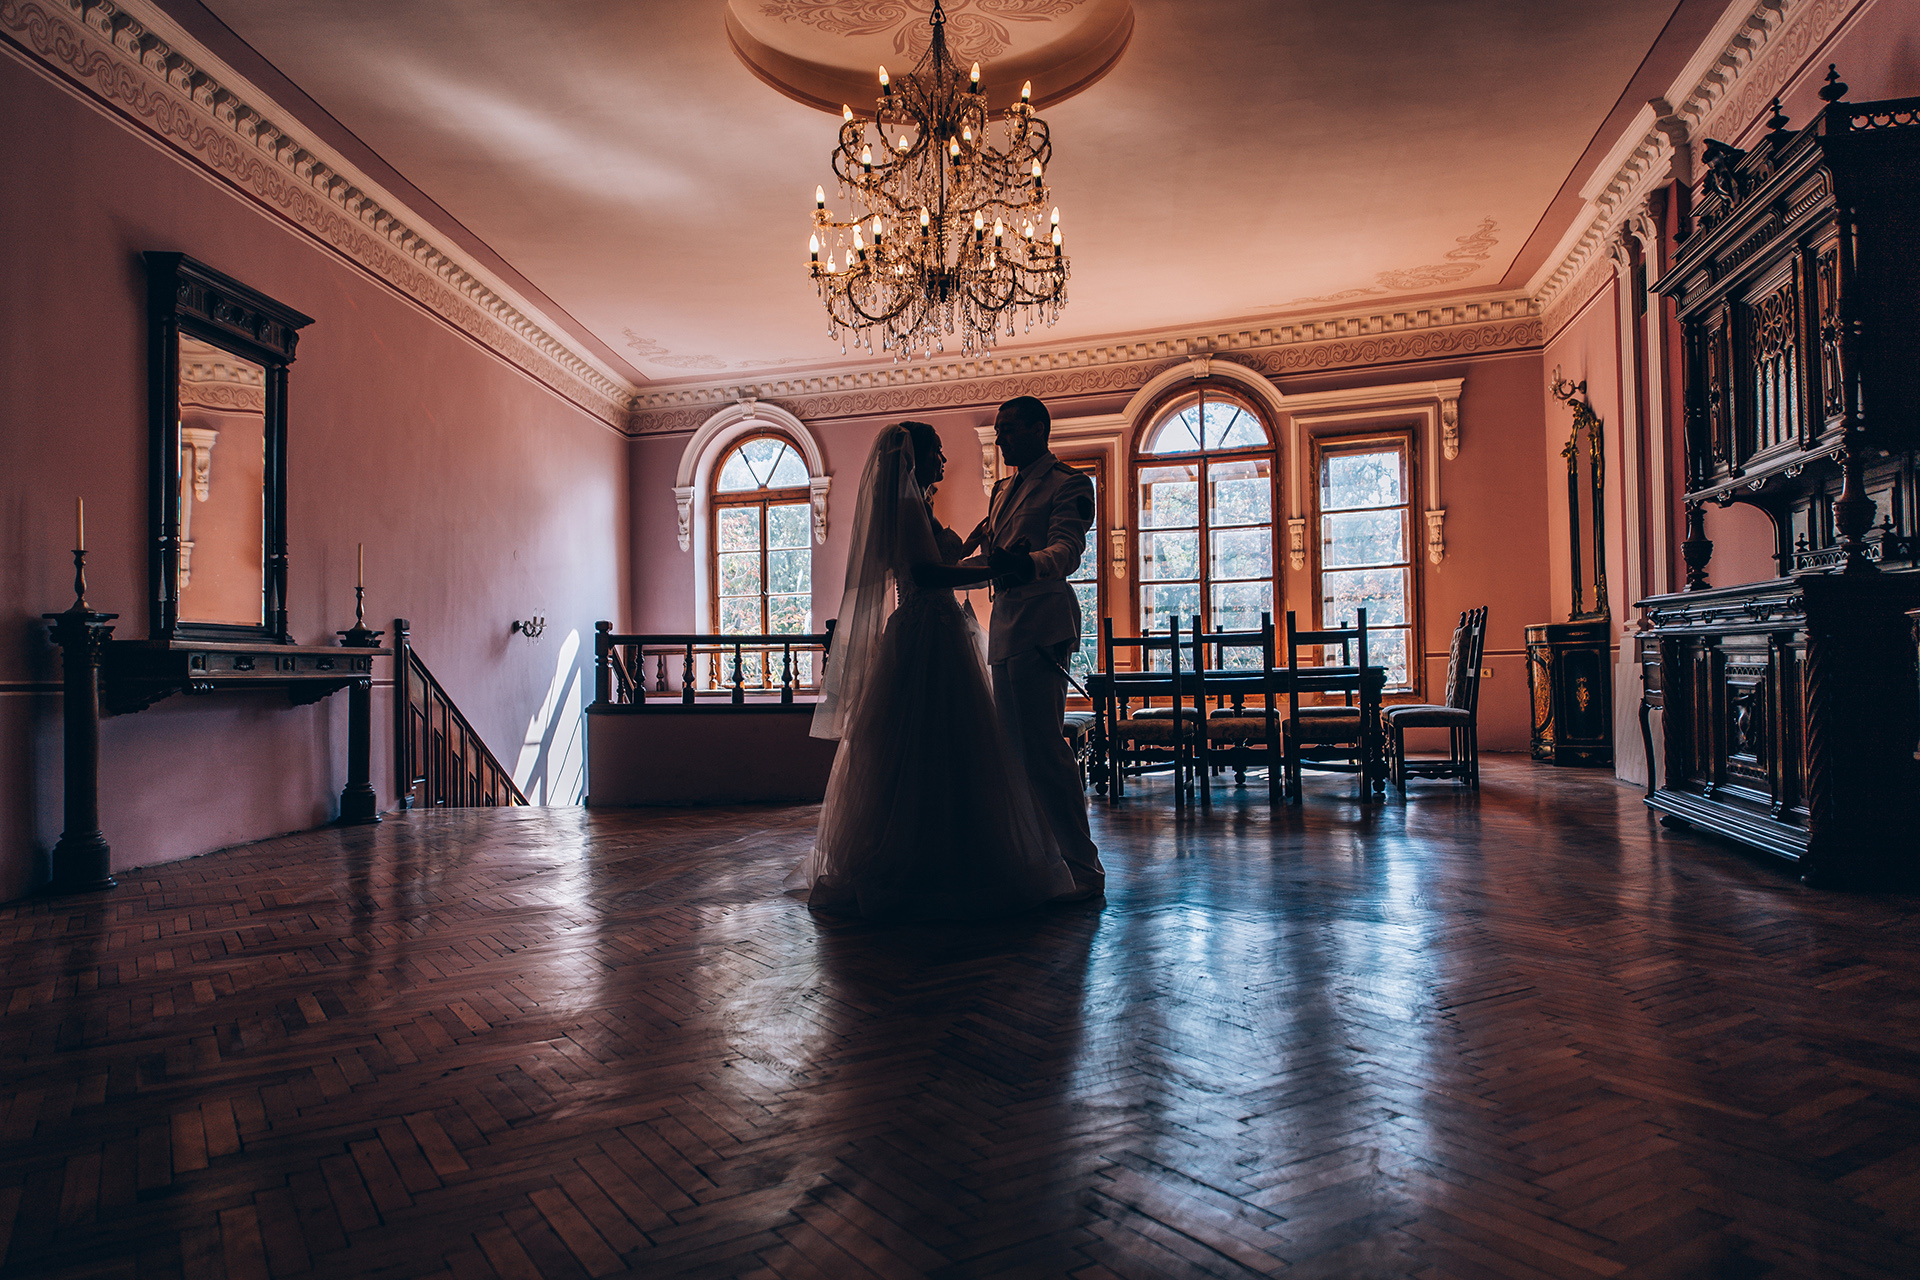 Bulgaria Wedding Photography | The bride and groom take a moment for themselves